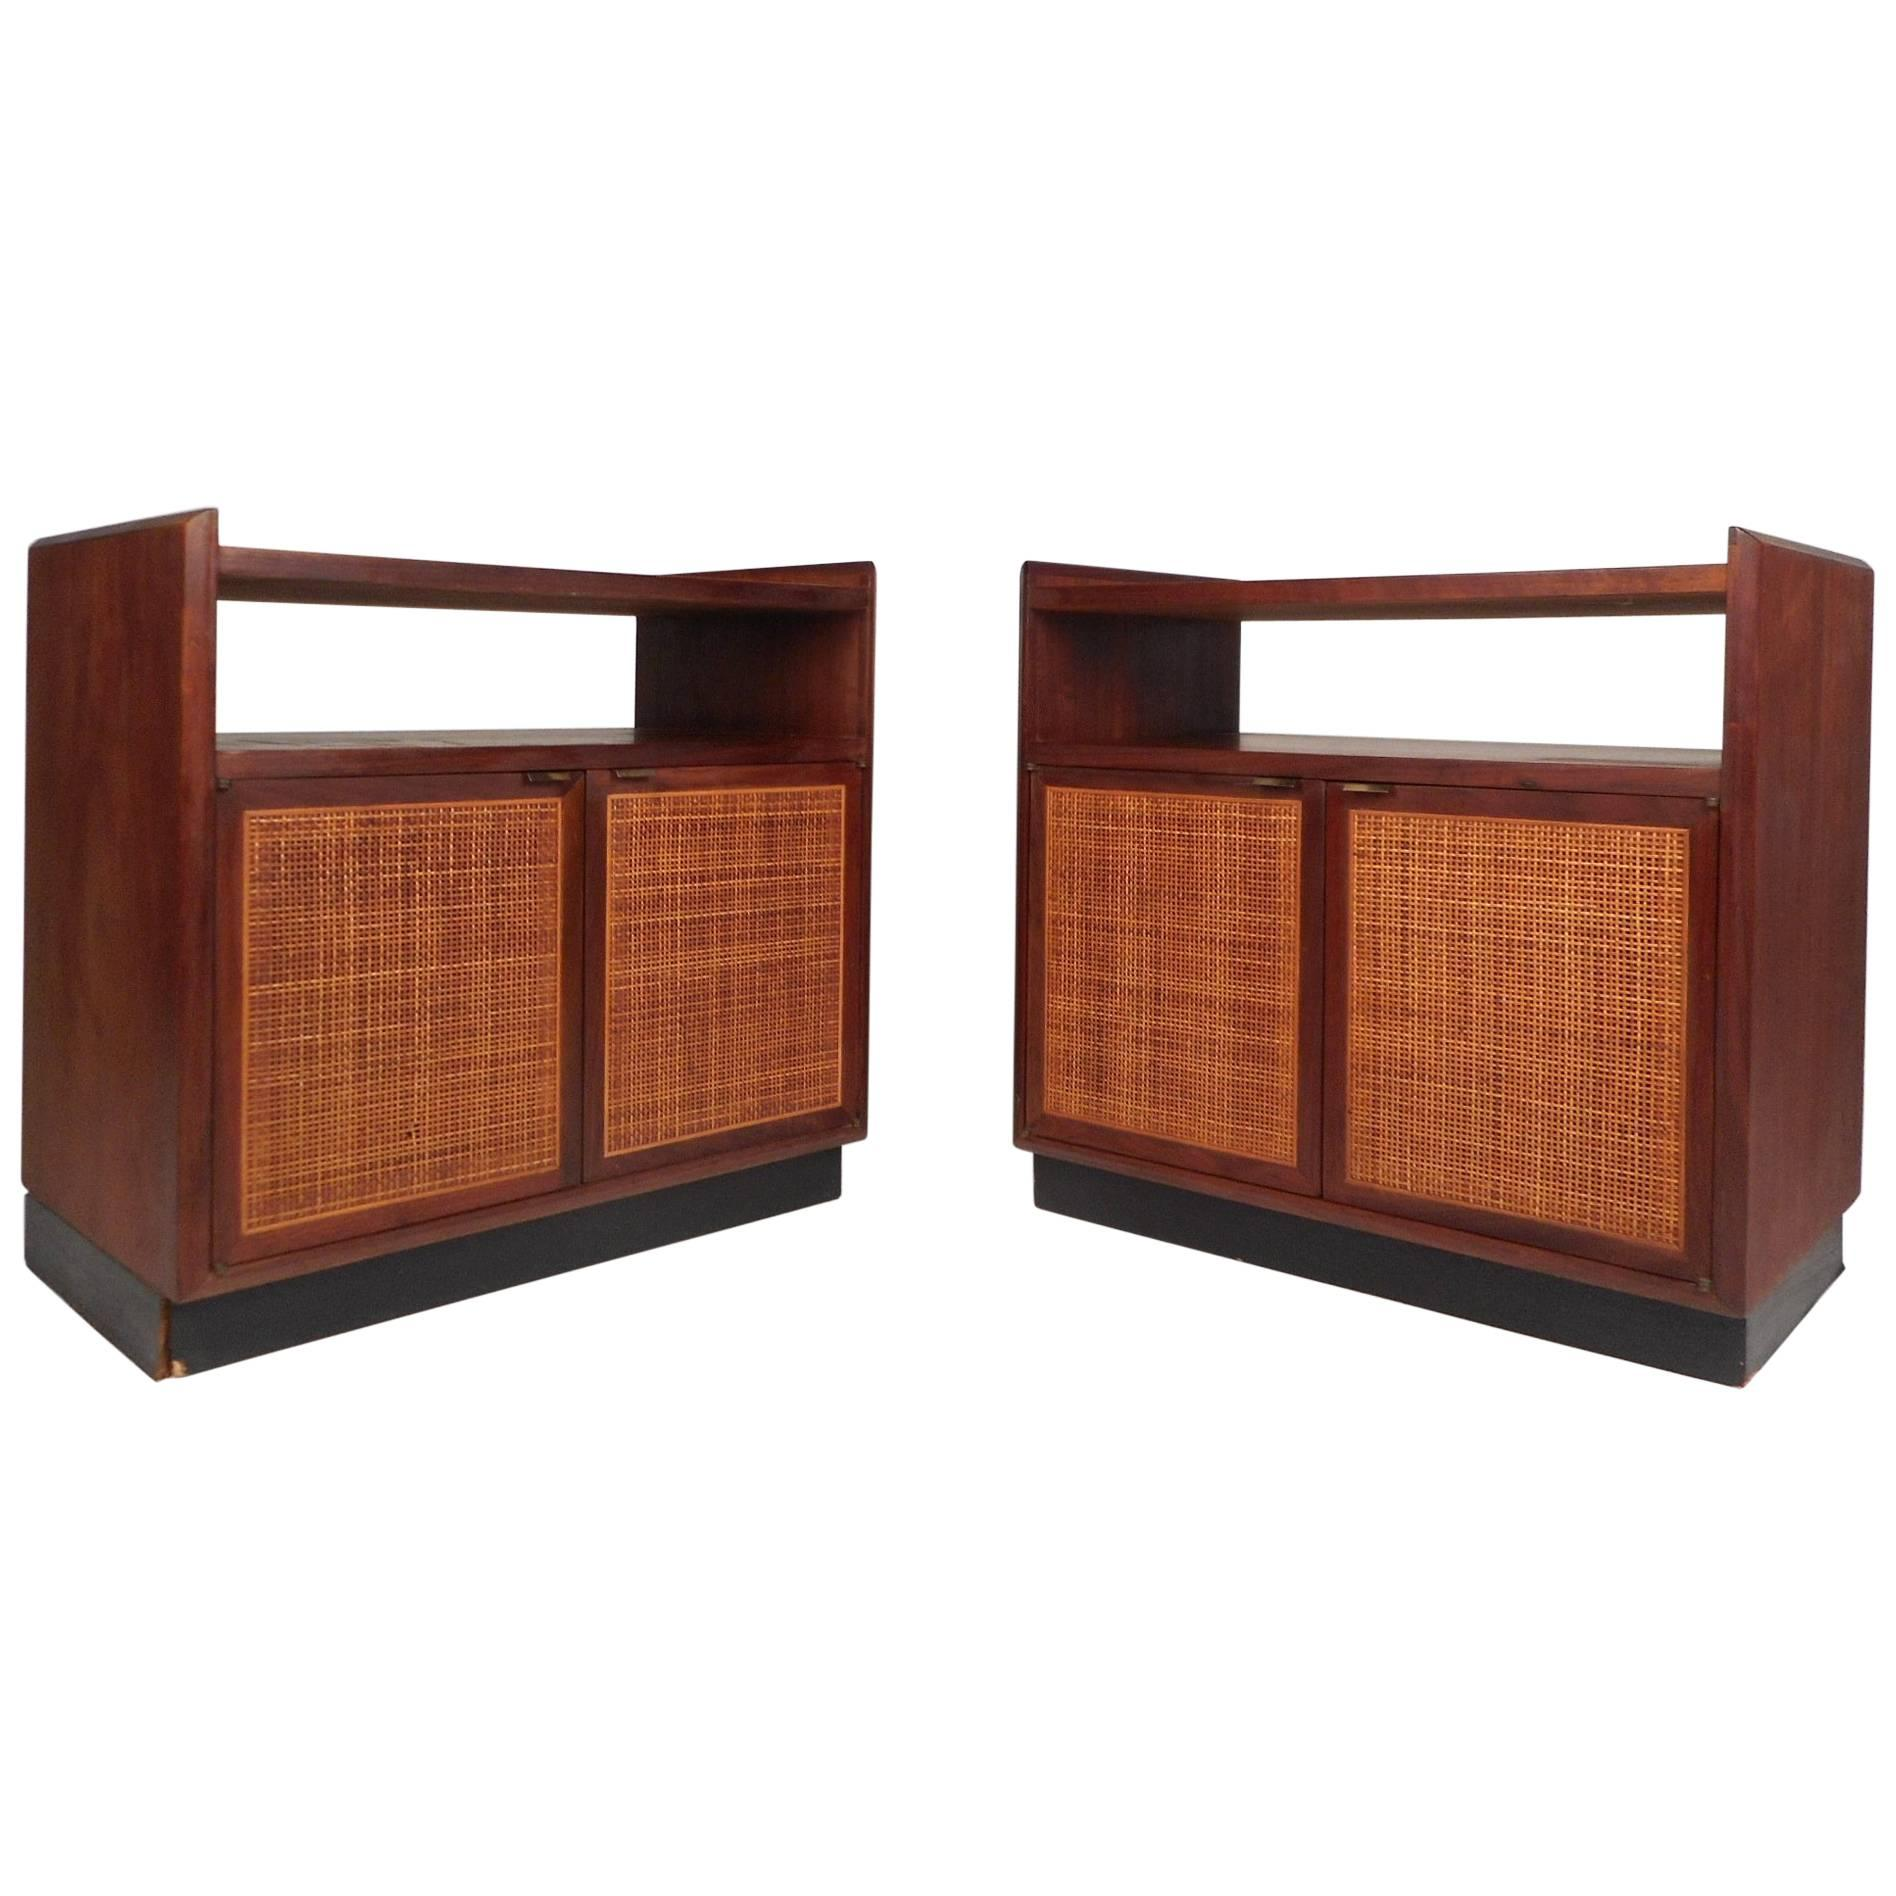 pair of midcentury modern nightstands with a cane front